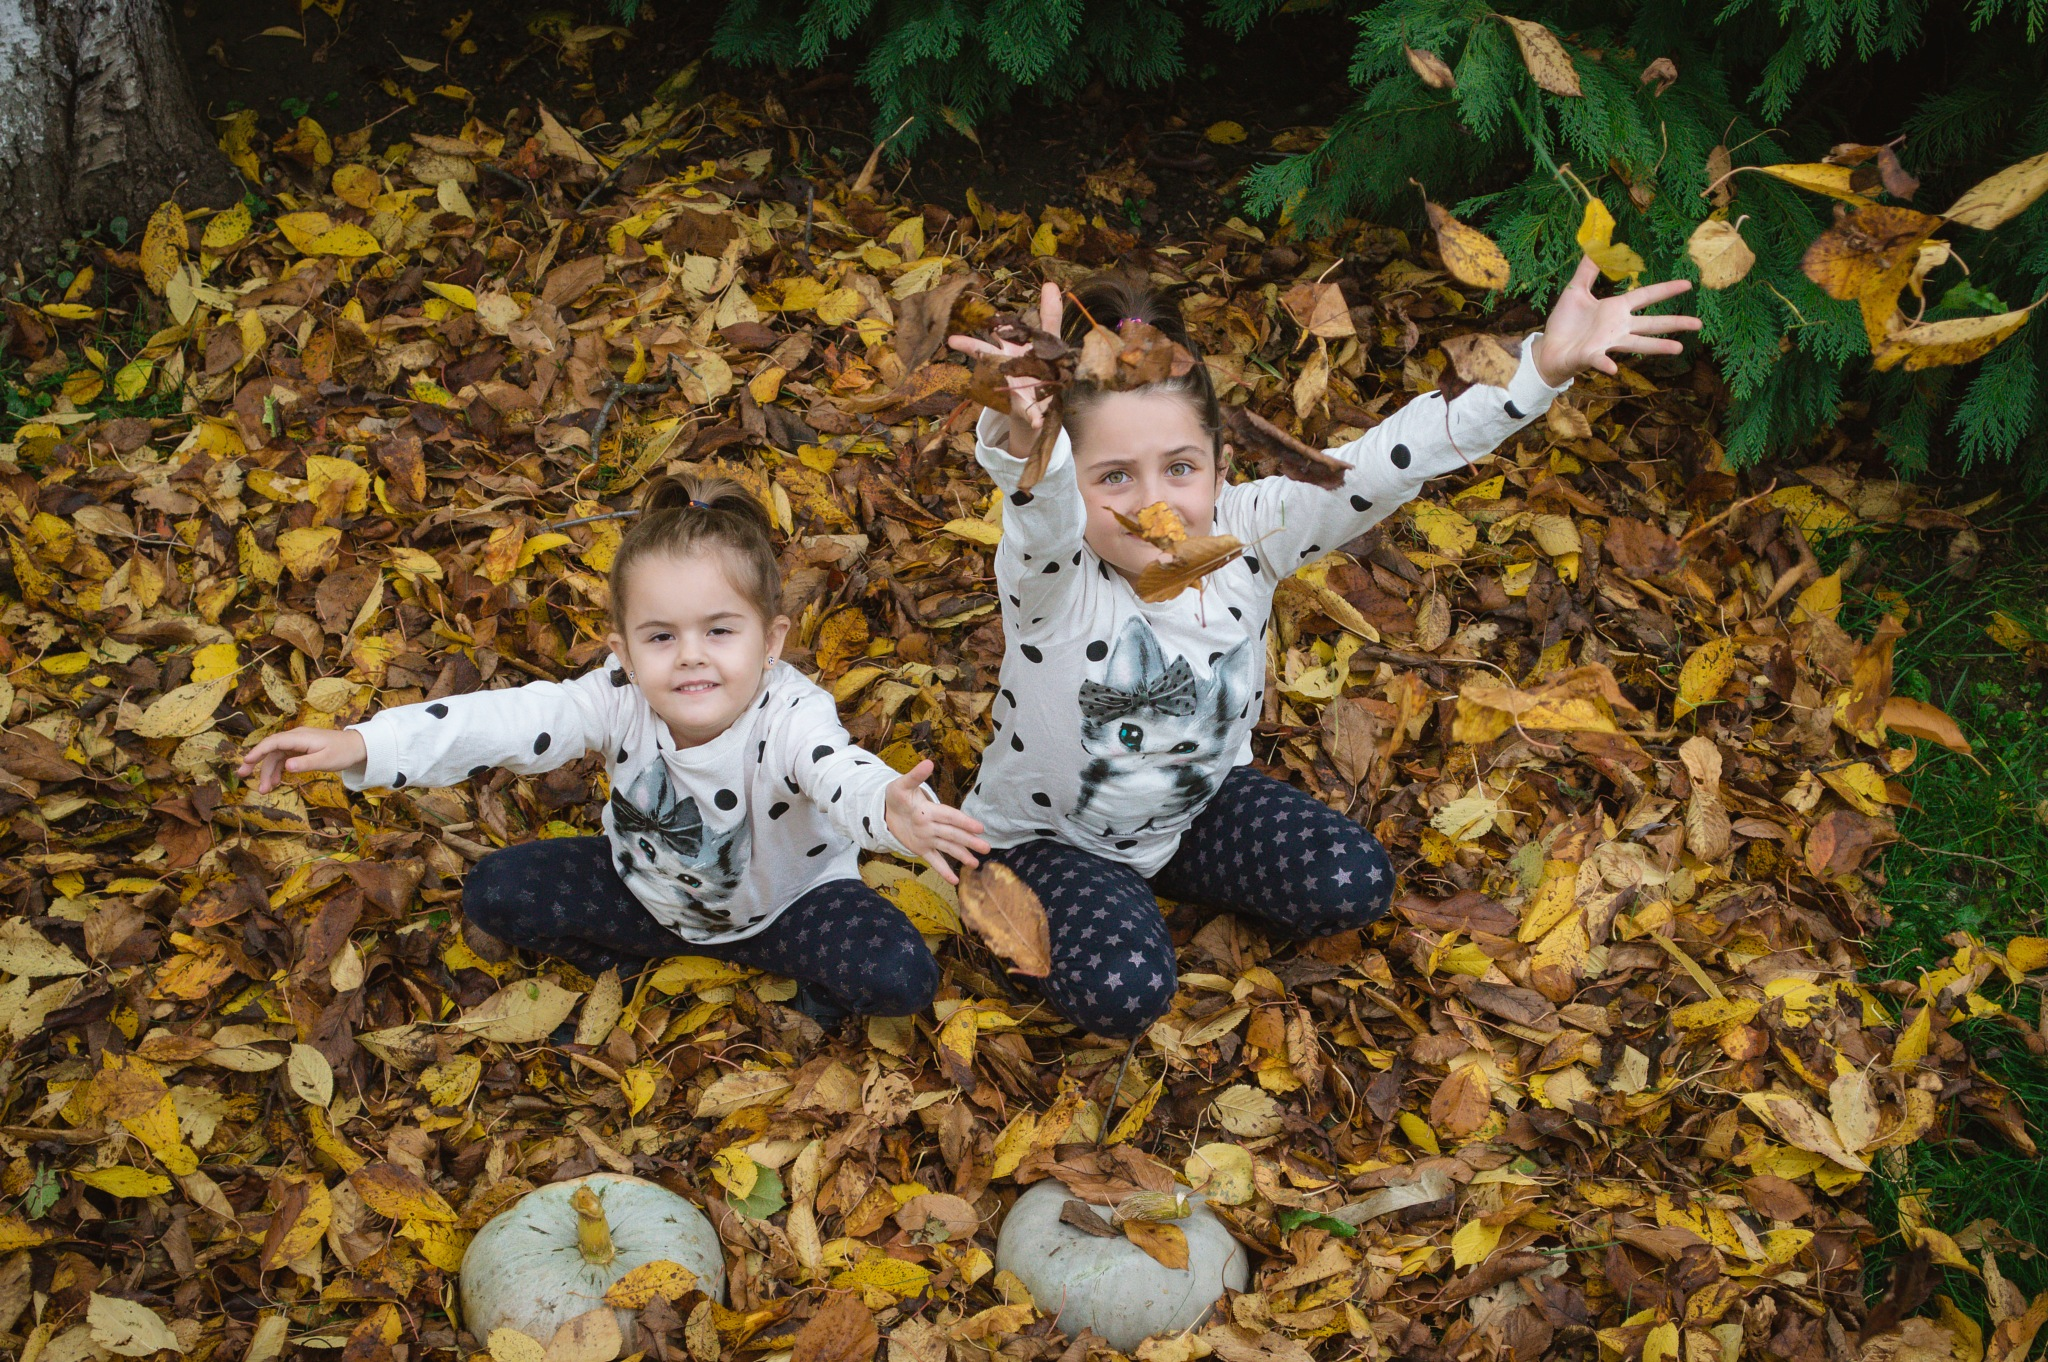 Playing with fallen leafs by Iulian Bud